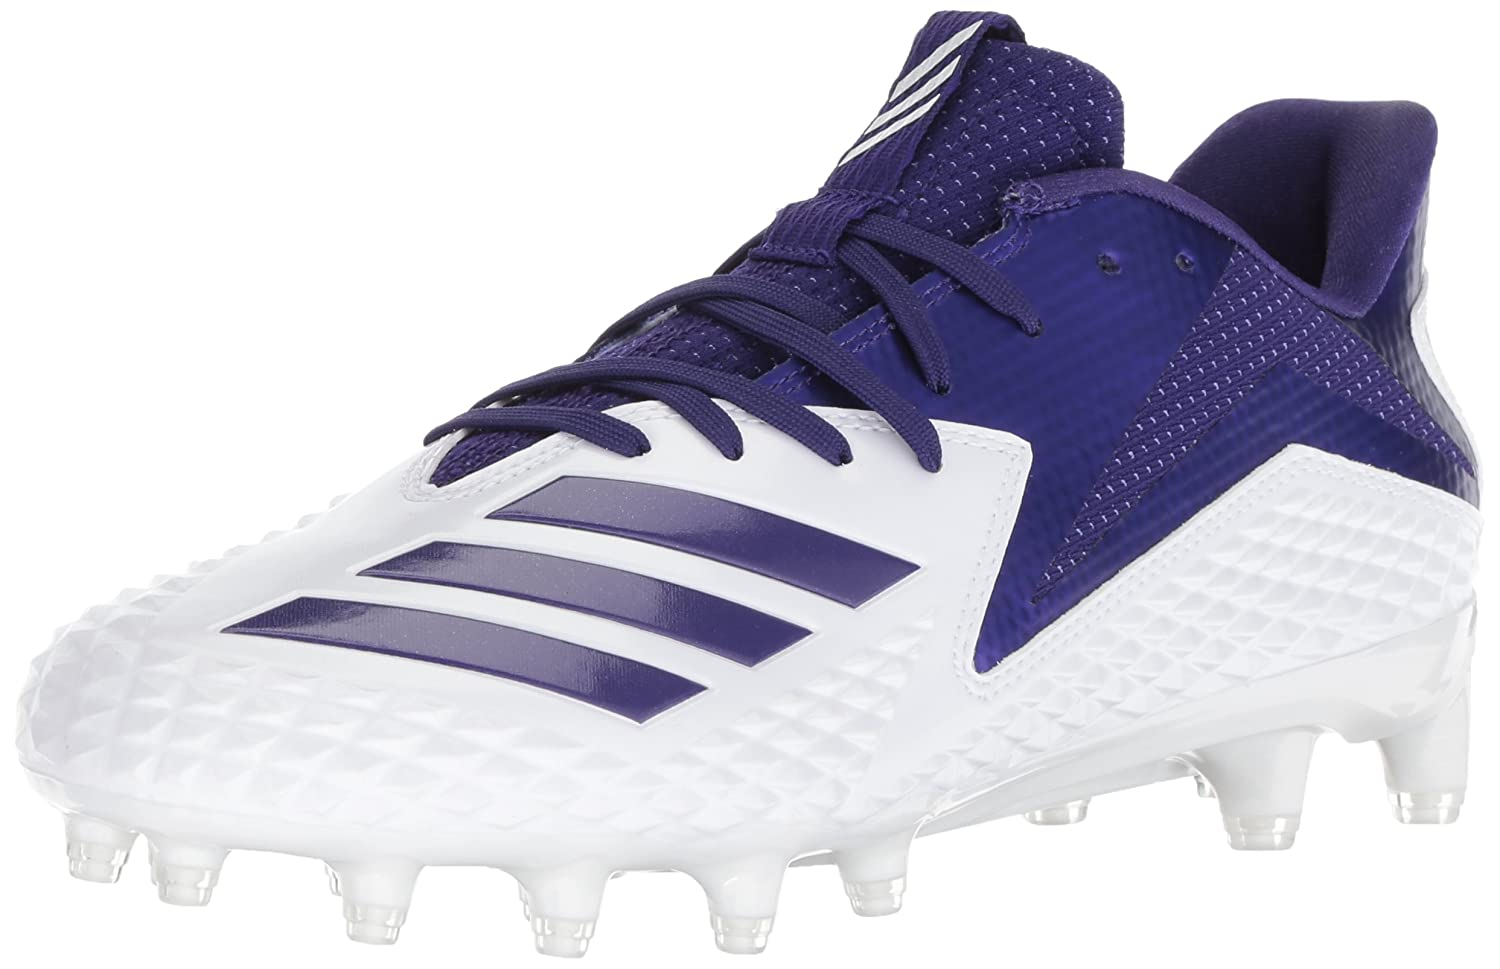 Adidas - Freak X Carbon Flach Herren, Weiá (Weiß Collegiate Purple Collegiate Purple), 43 D(M) EU